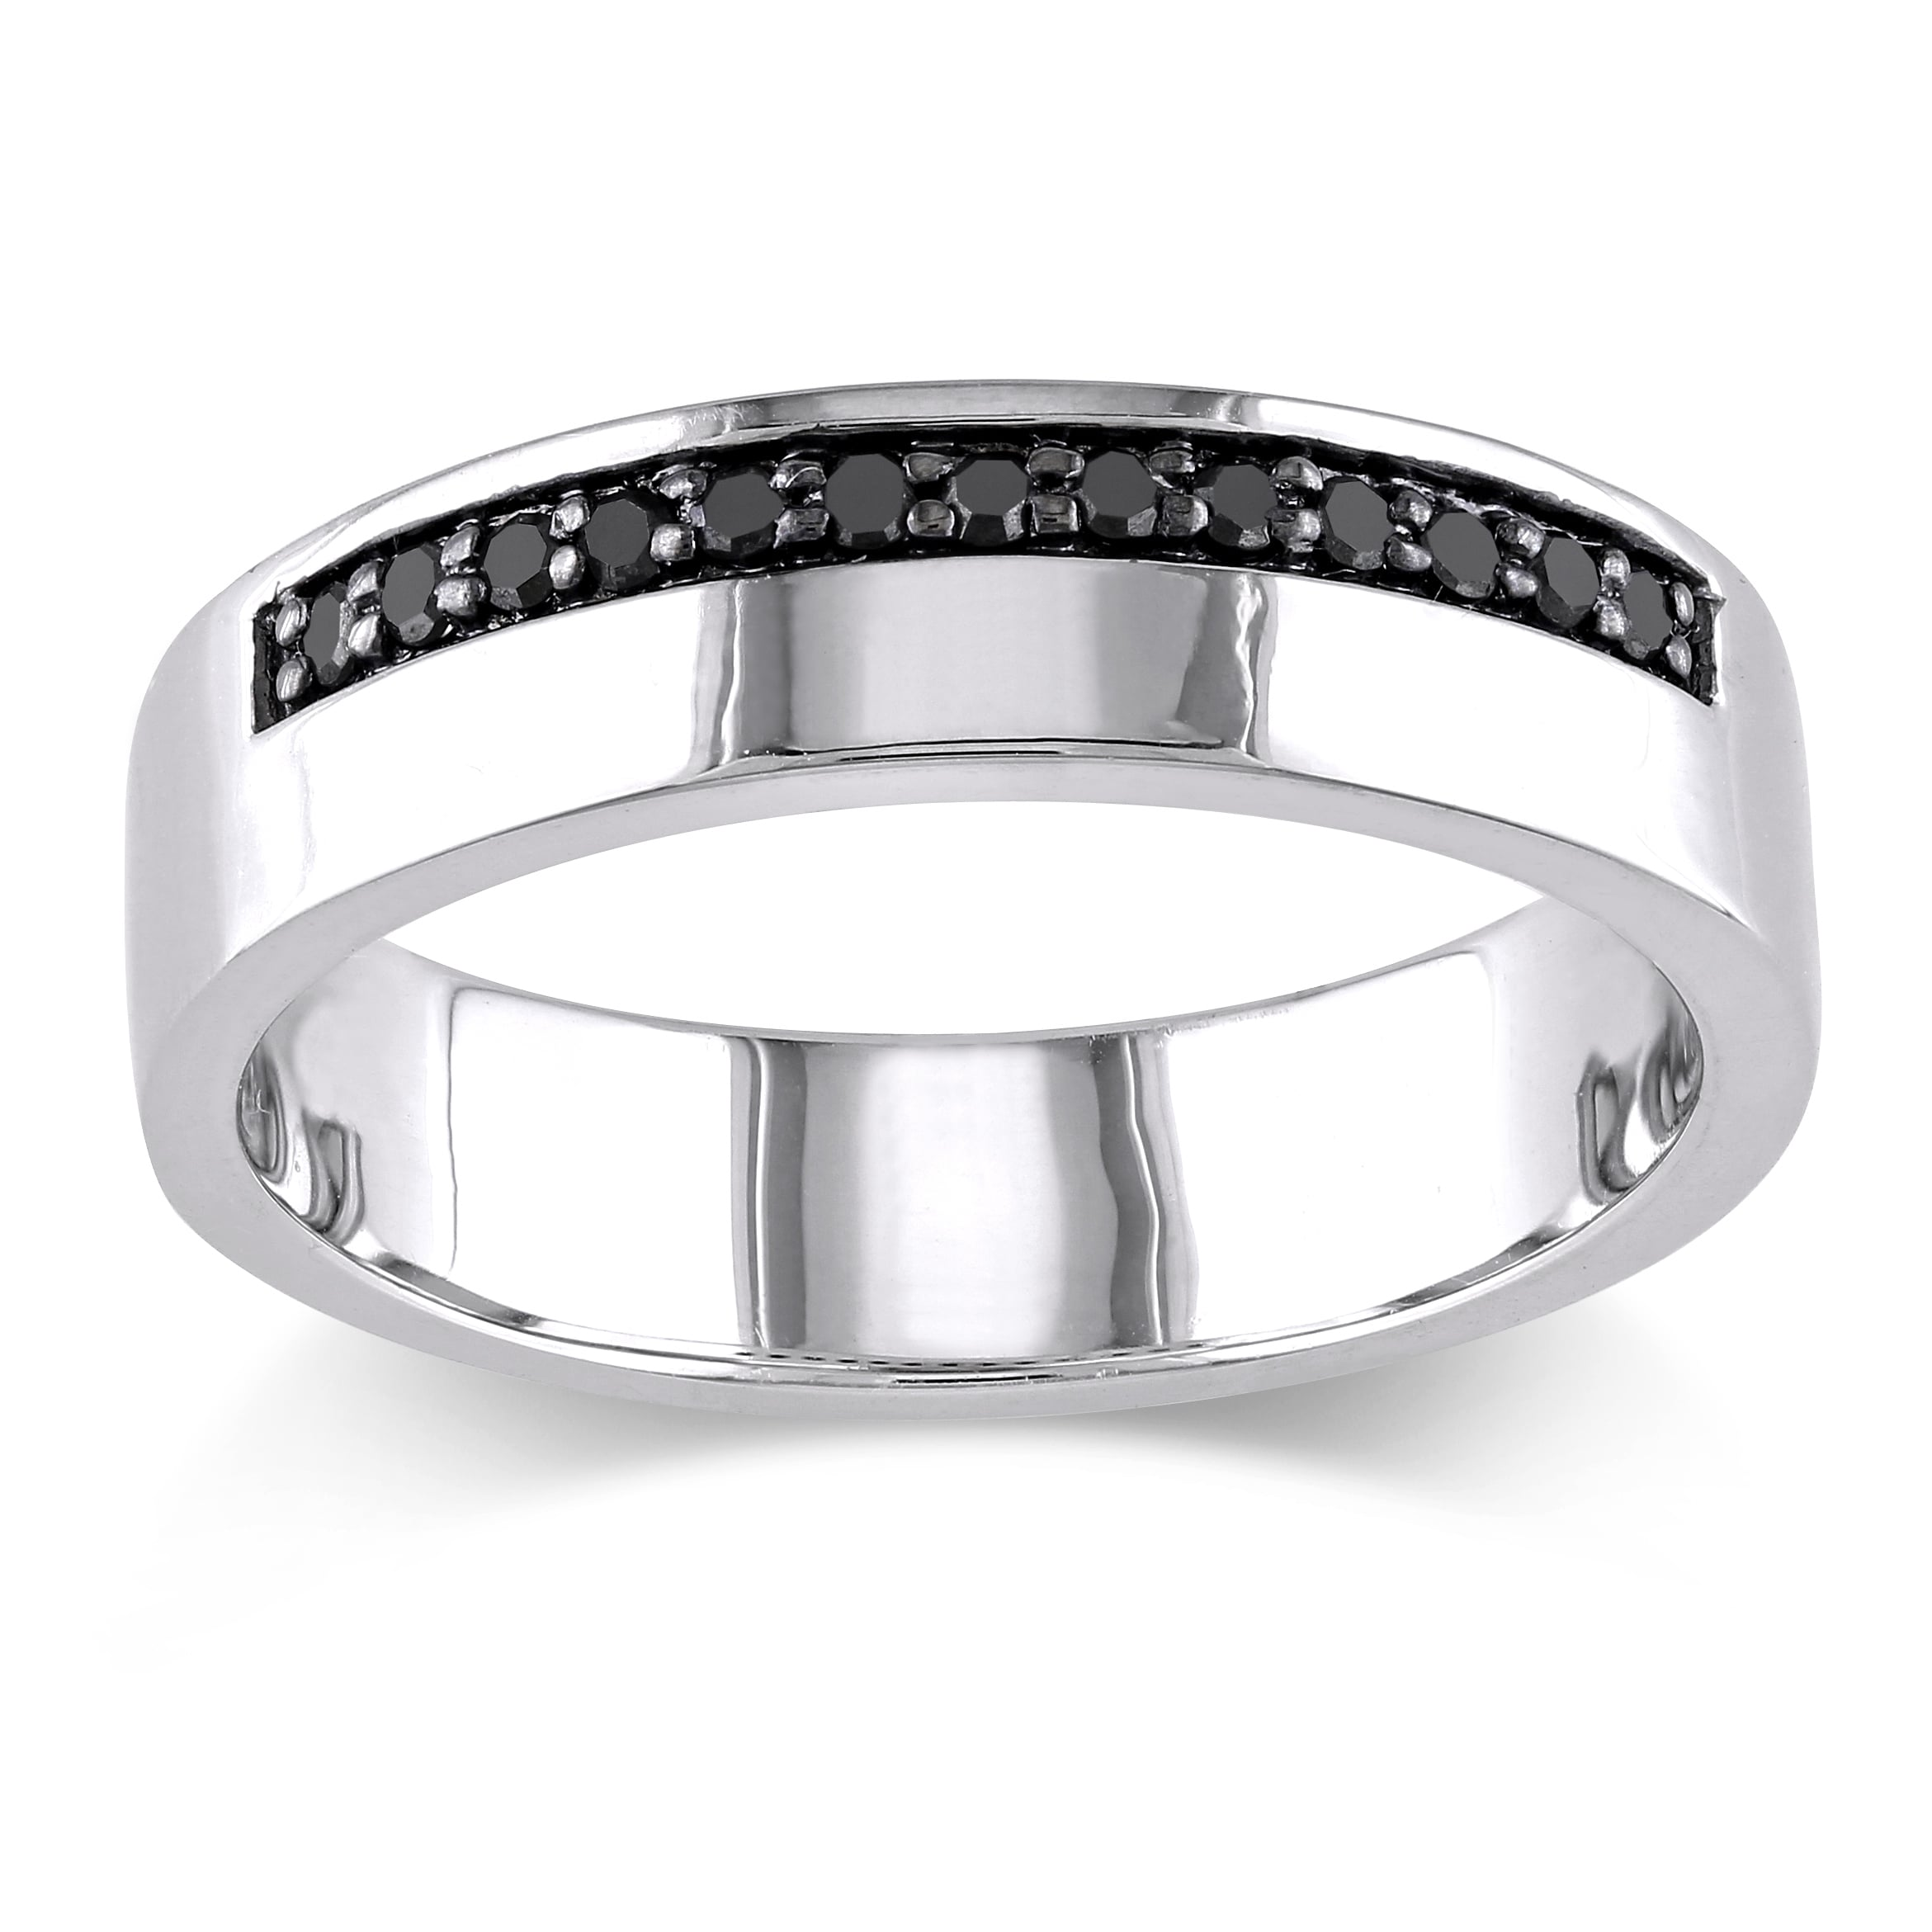 product men bands shipping free s diamond jewelry band miadora sterling today wedding mens black overstock ring watches silver tdw